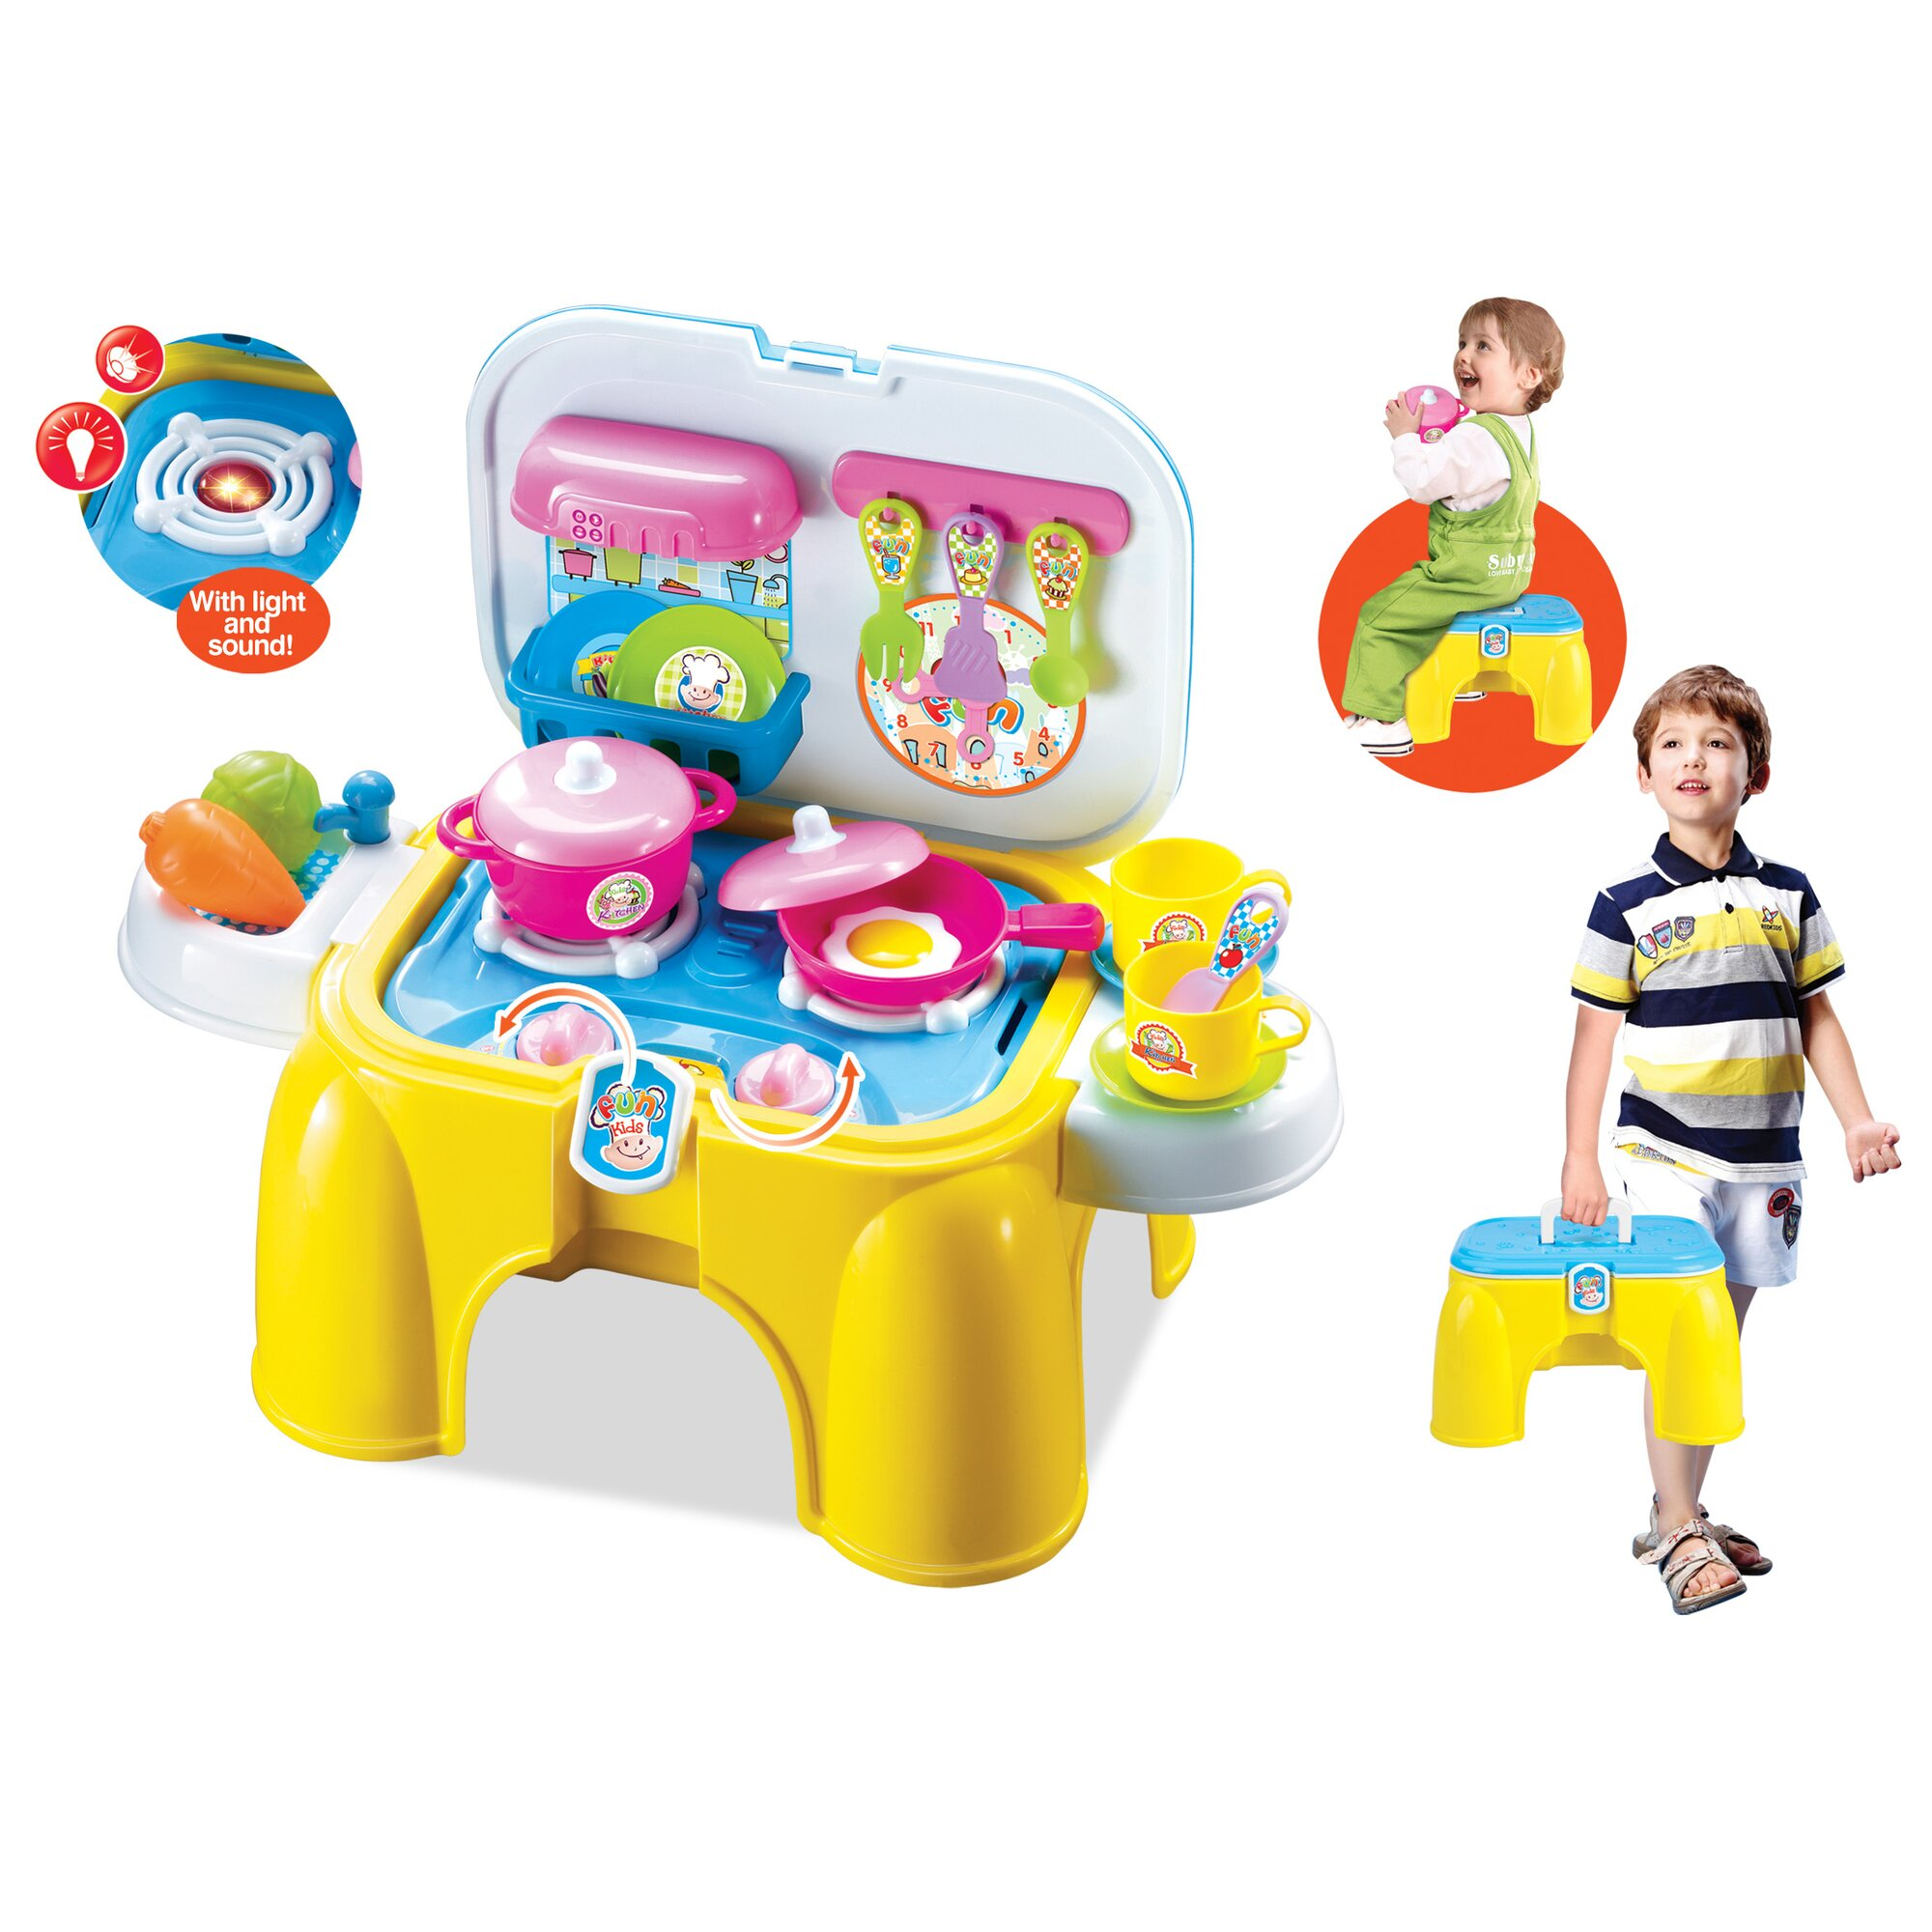 Berry toys my first portable and carry kitchen play set for First kitchen set